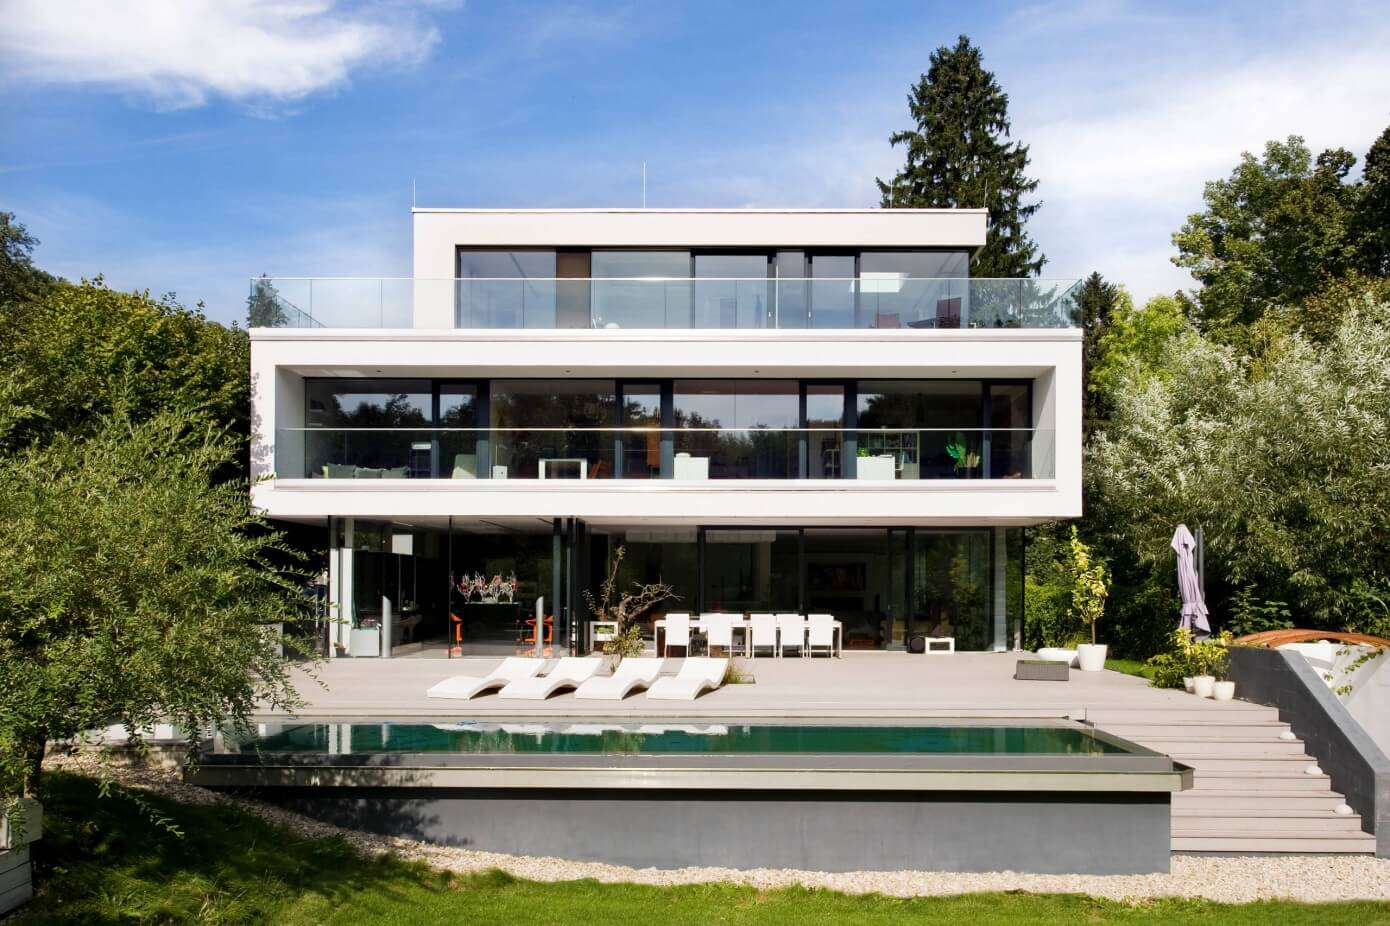 House in Hinterbrühl by Wunschhaus Architektur | HomeAdore